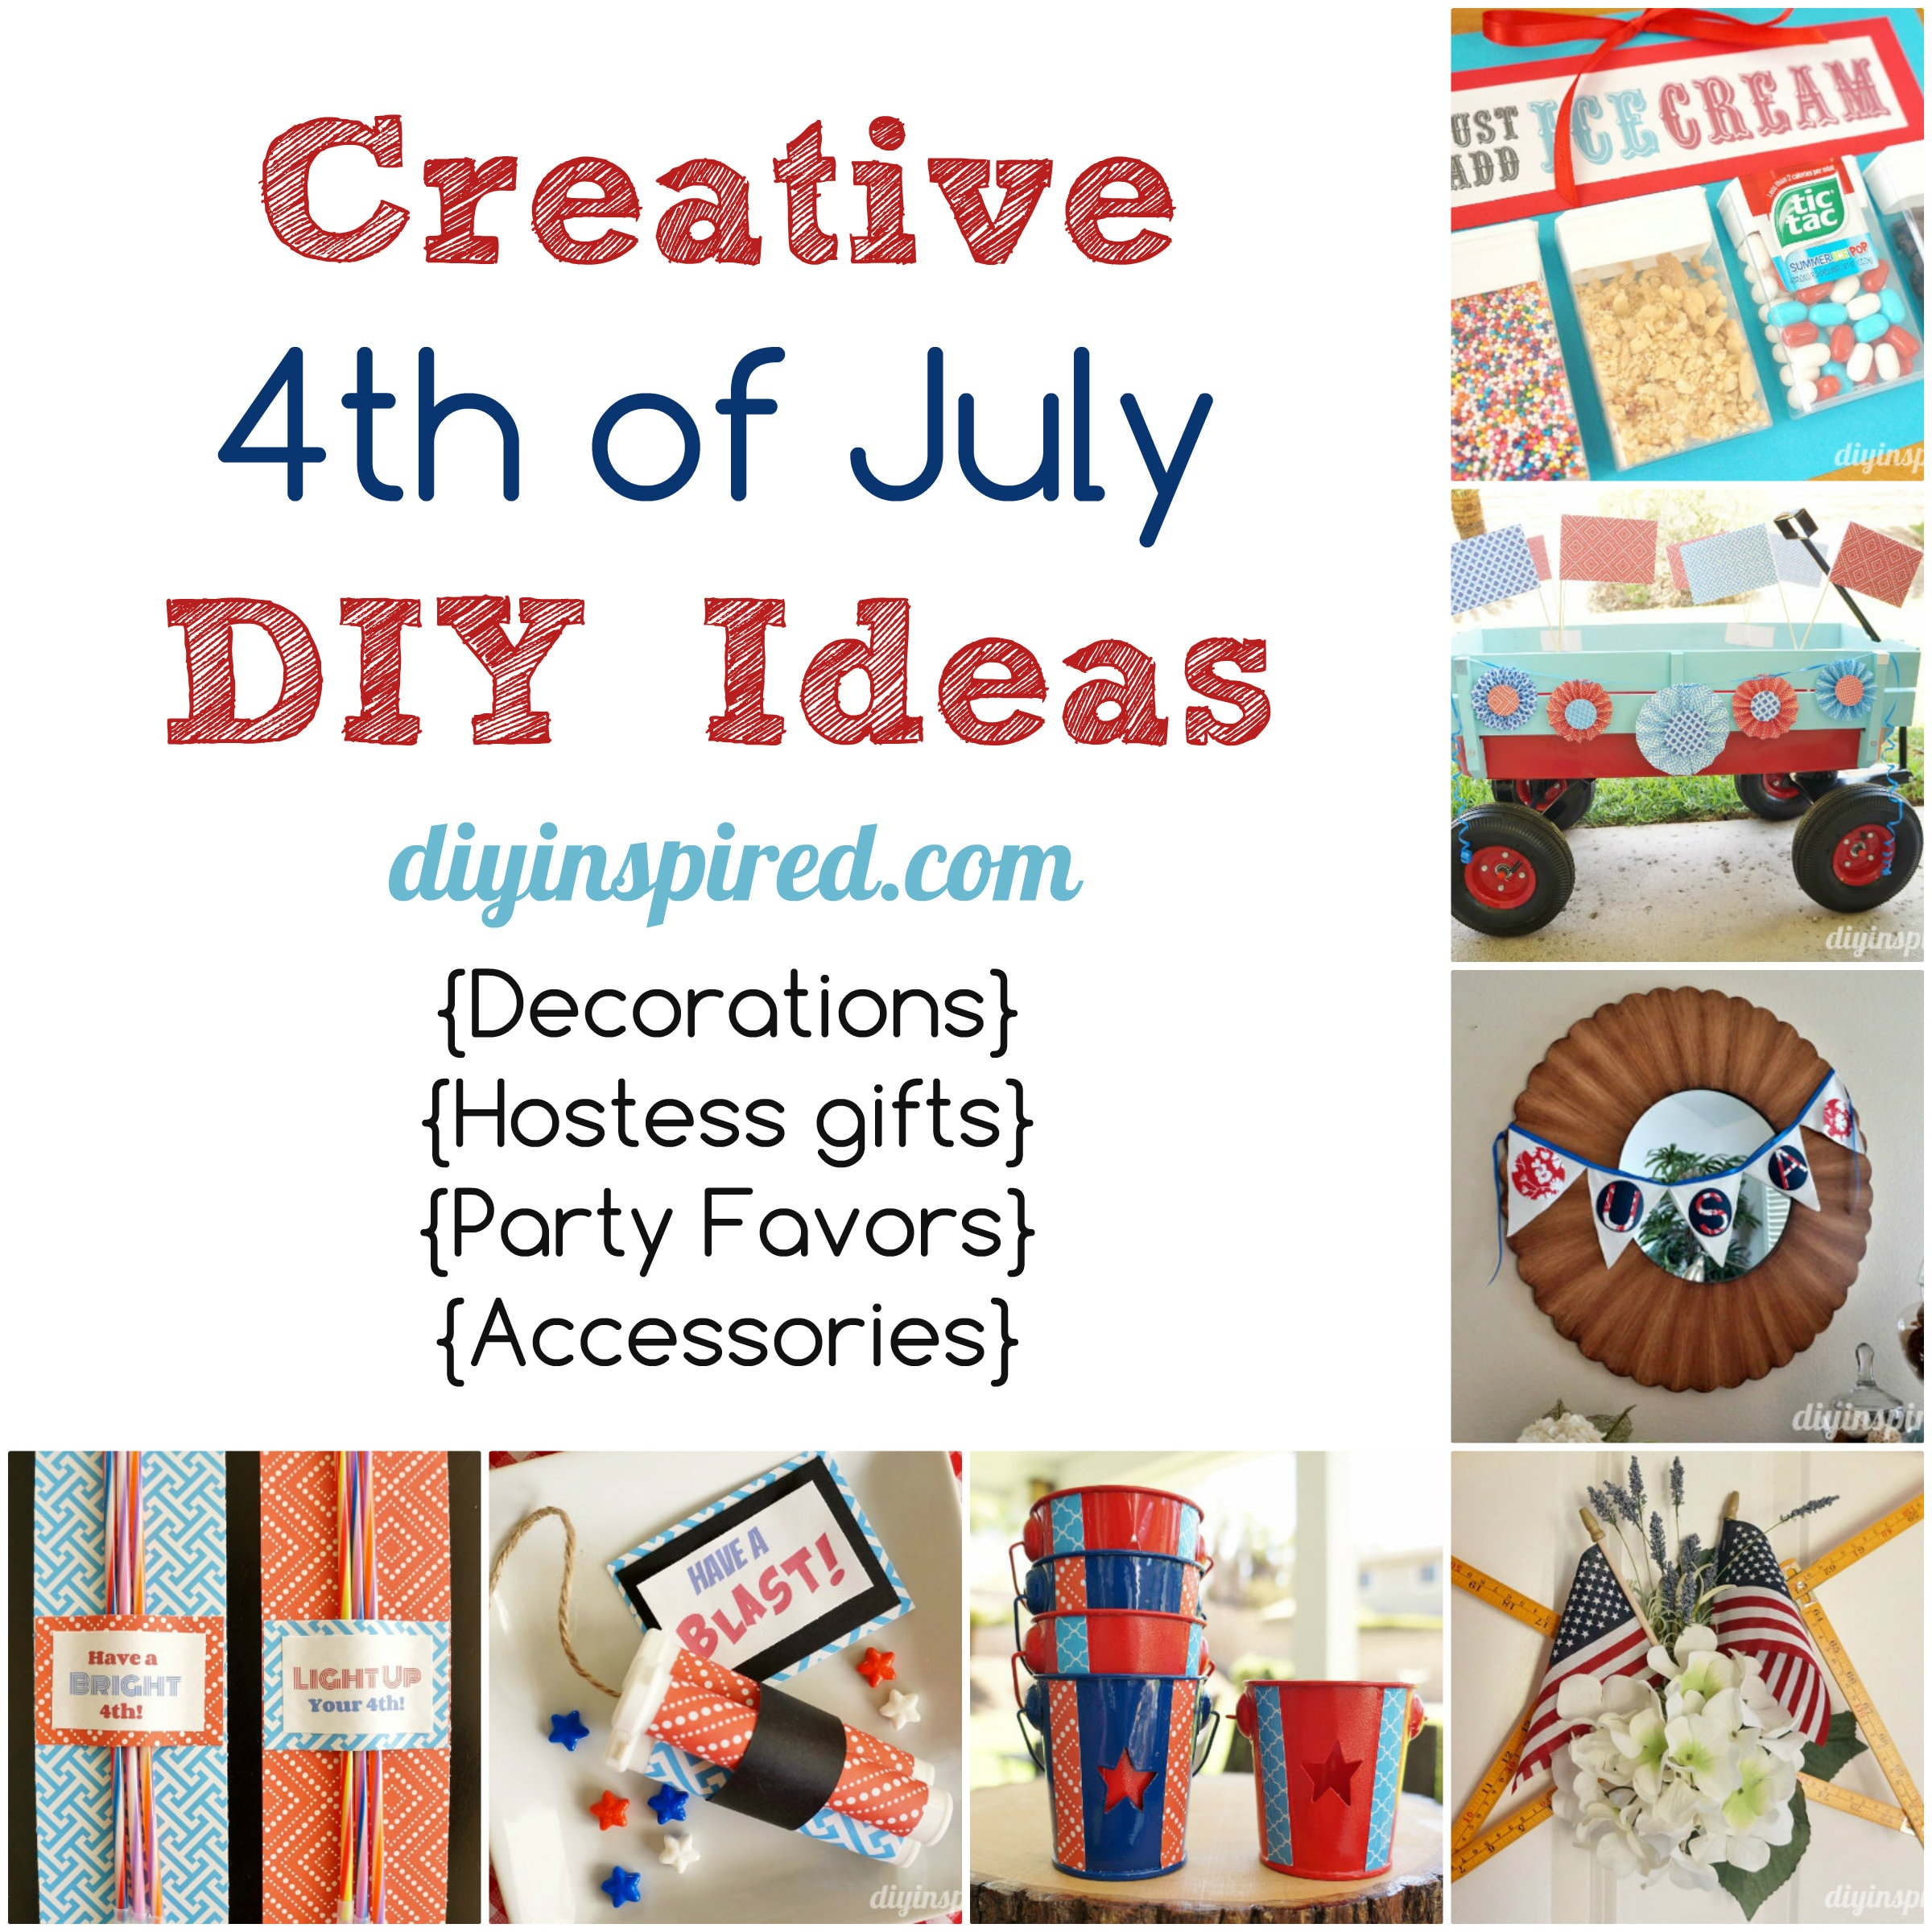 Creative Fourth of July DIY Ideas